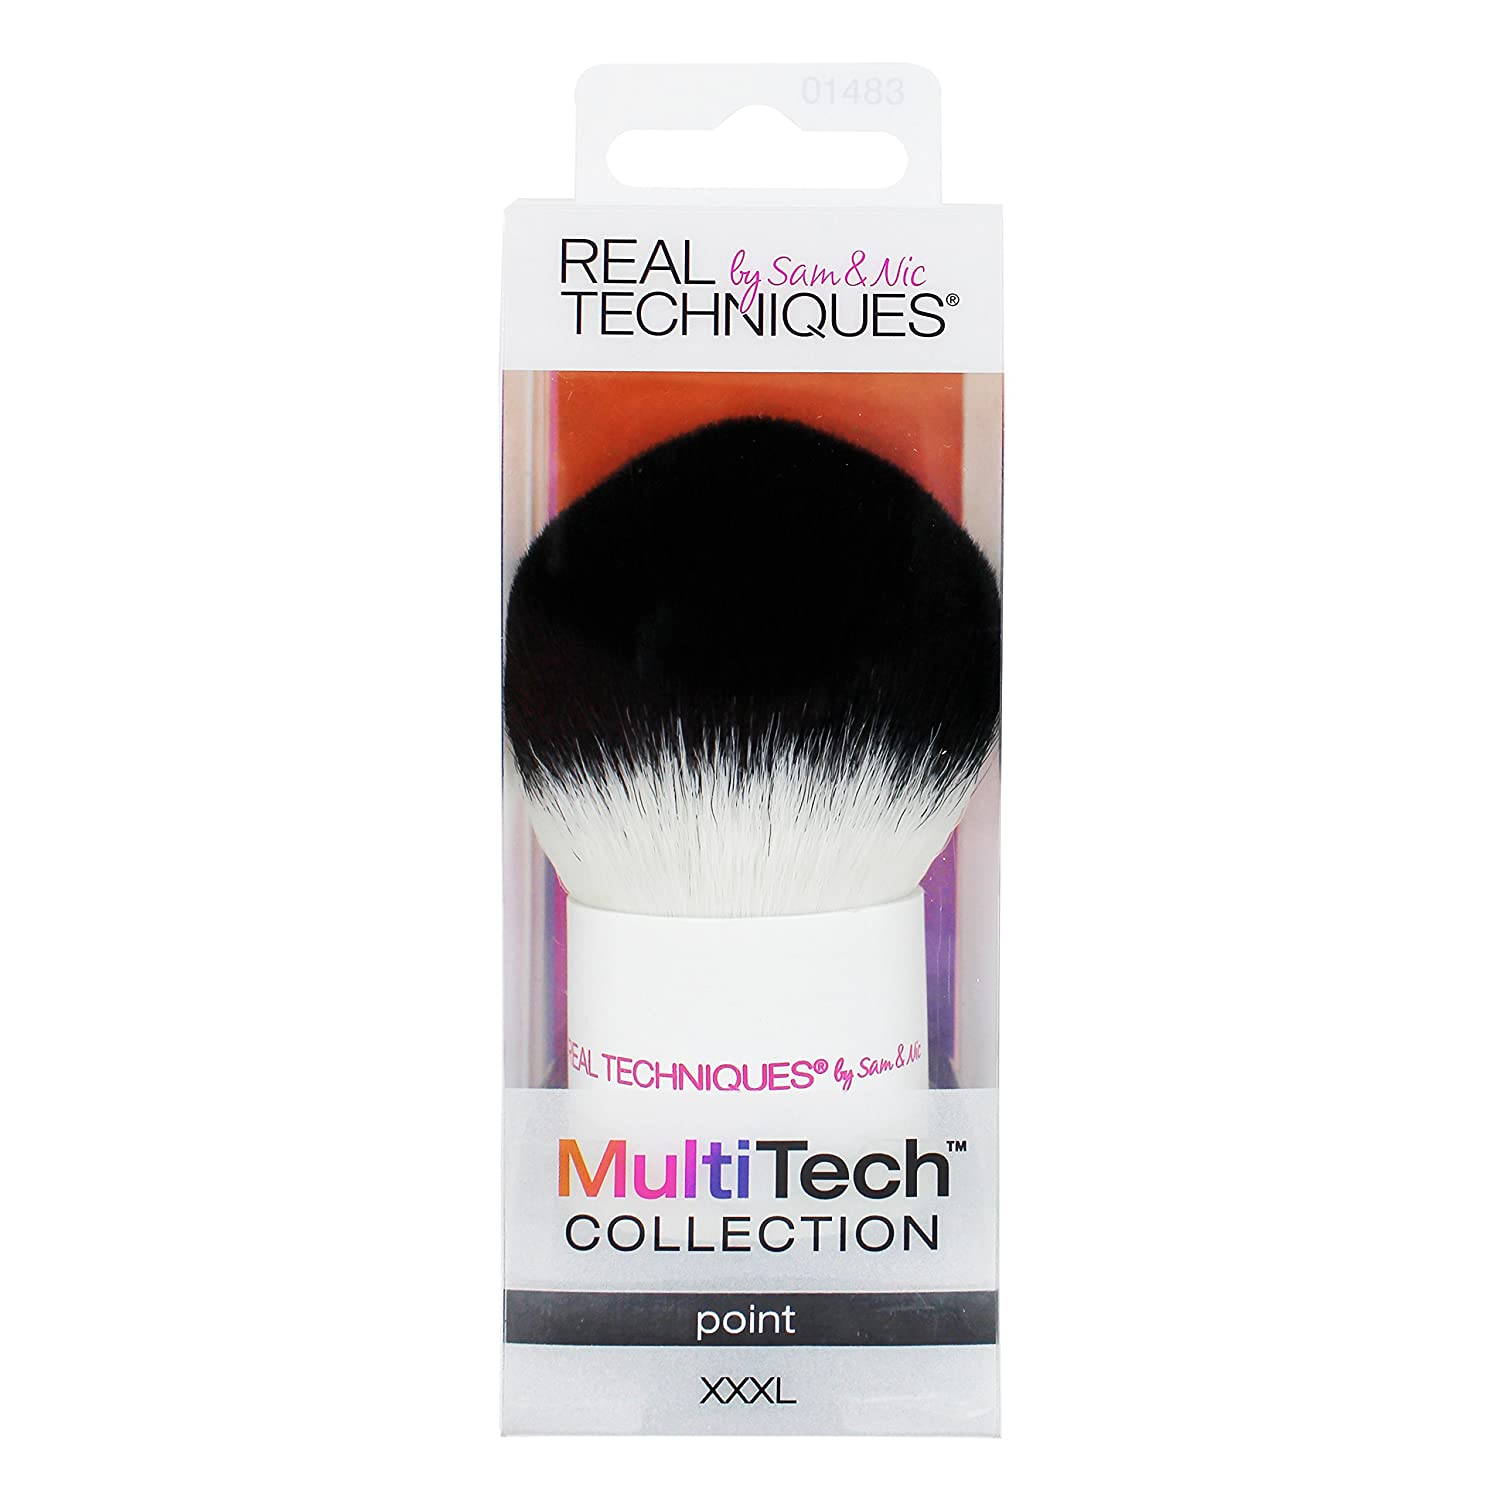 Real Techniques-MultiTech Point XXX-Large-Makeup Brush-For Application, Blending and Contouring of Liquid, Cream or Powder Makeup REAL TECHNIQUES MultiTech